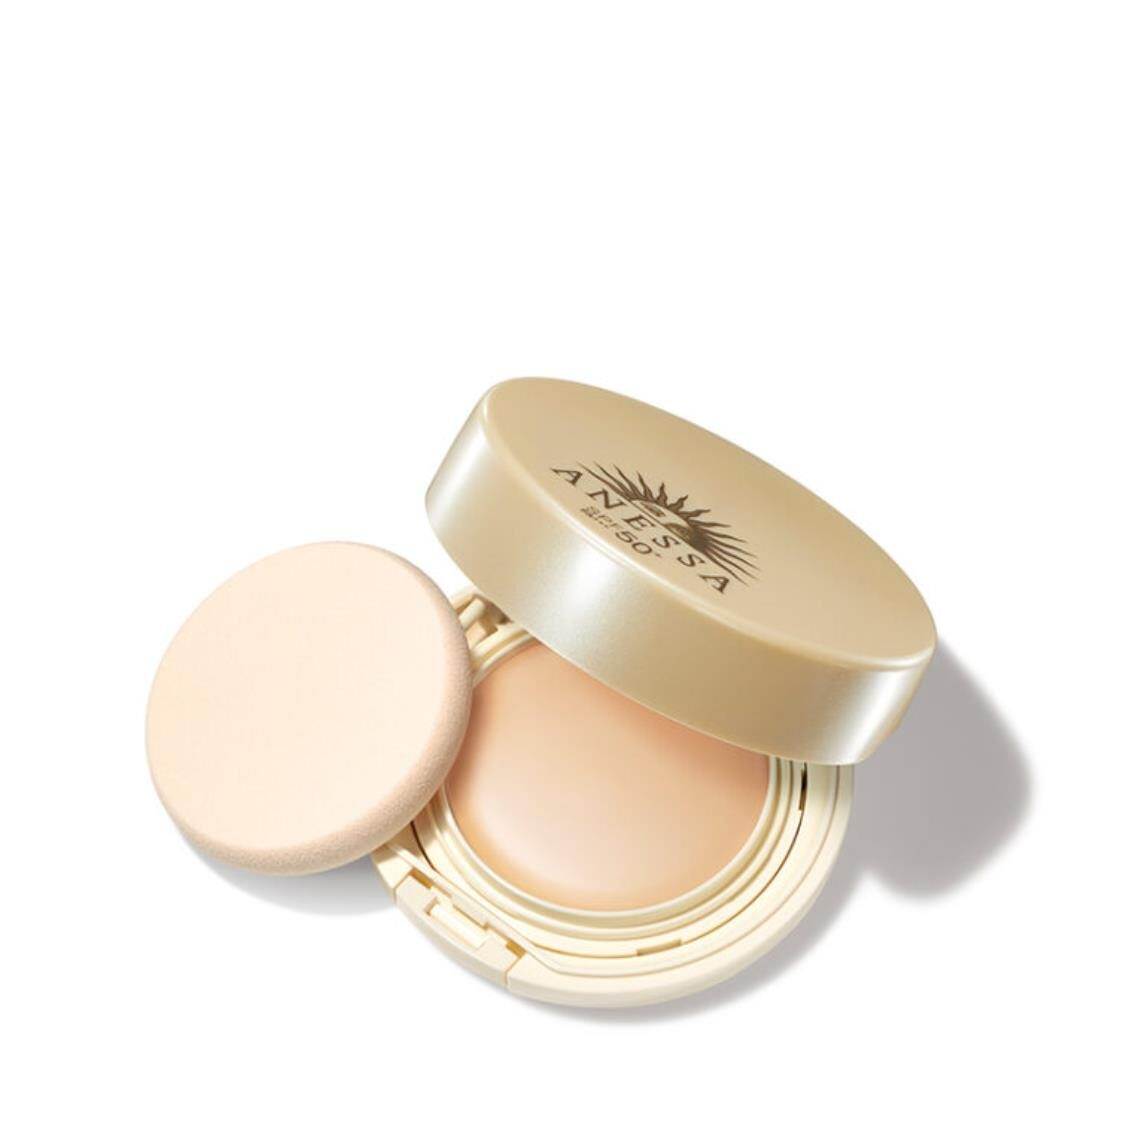 Anessa All-In-One Beauty Compact 1 Light 10g